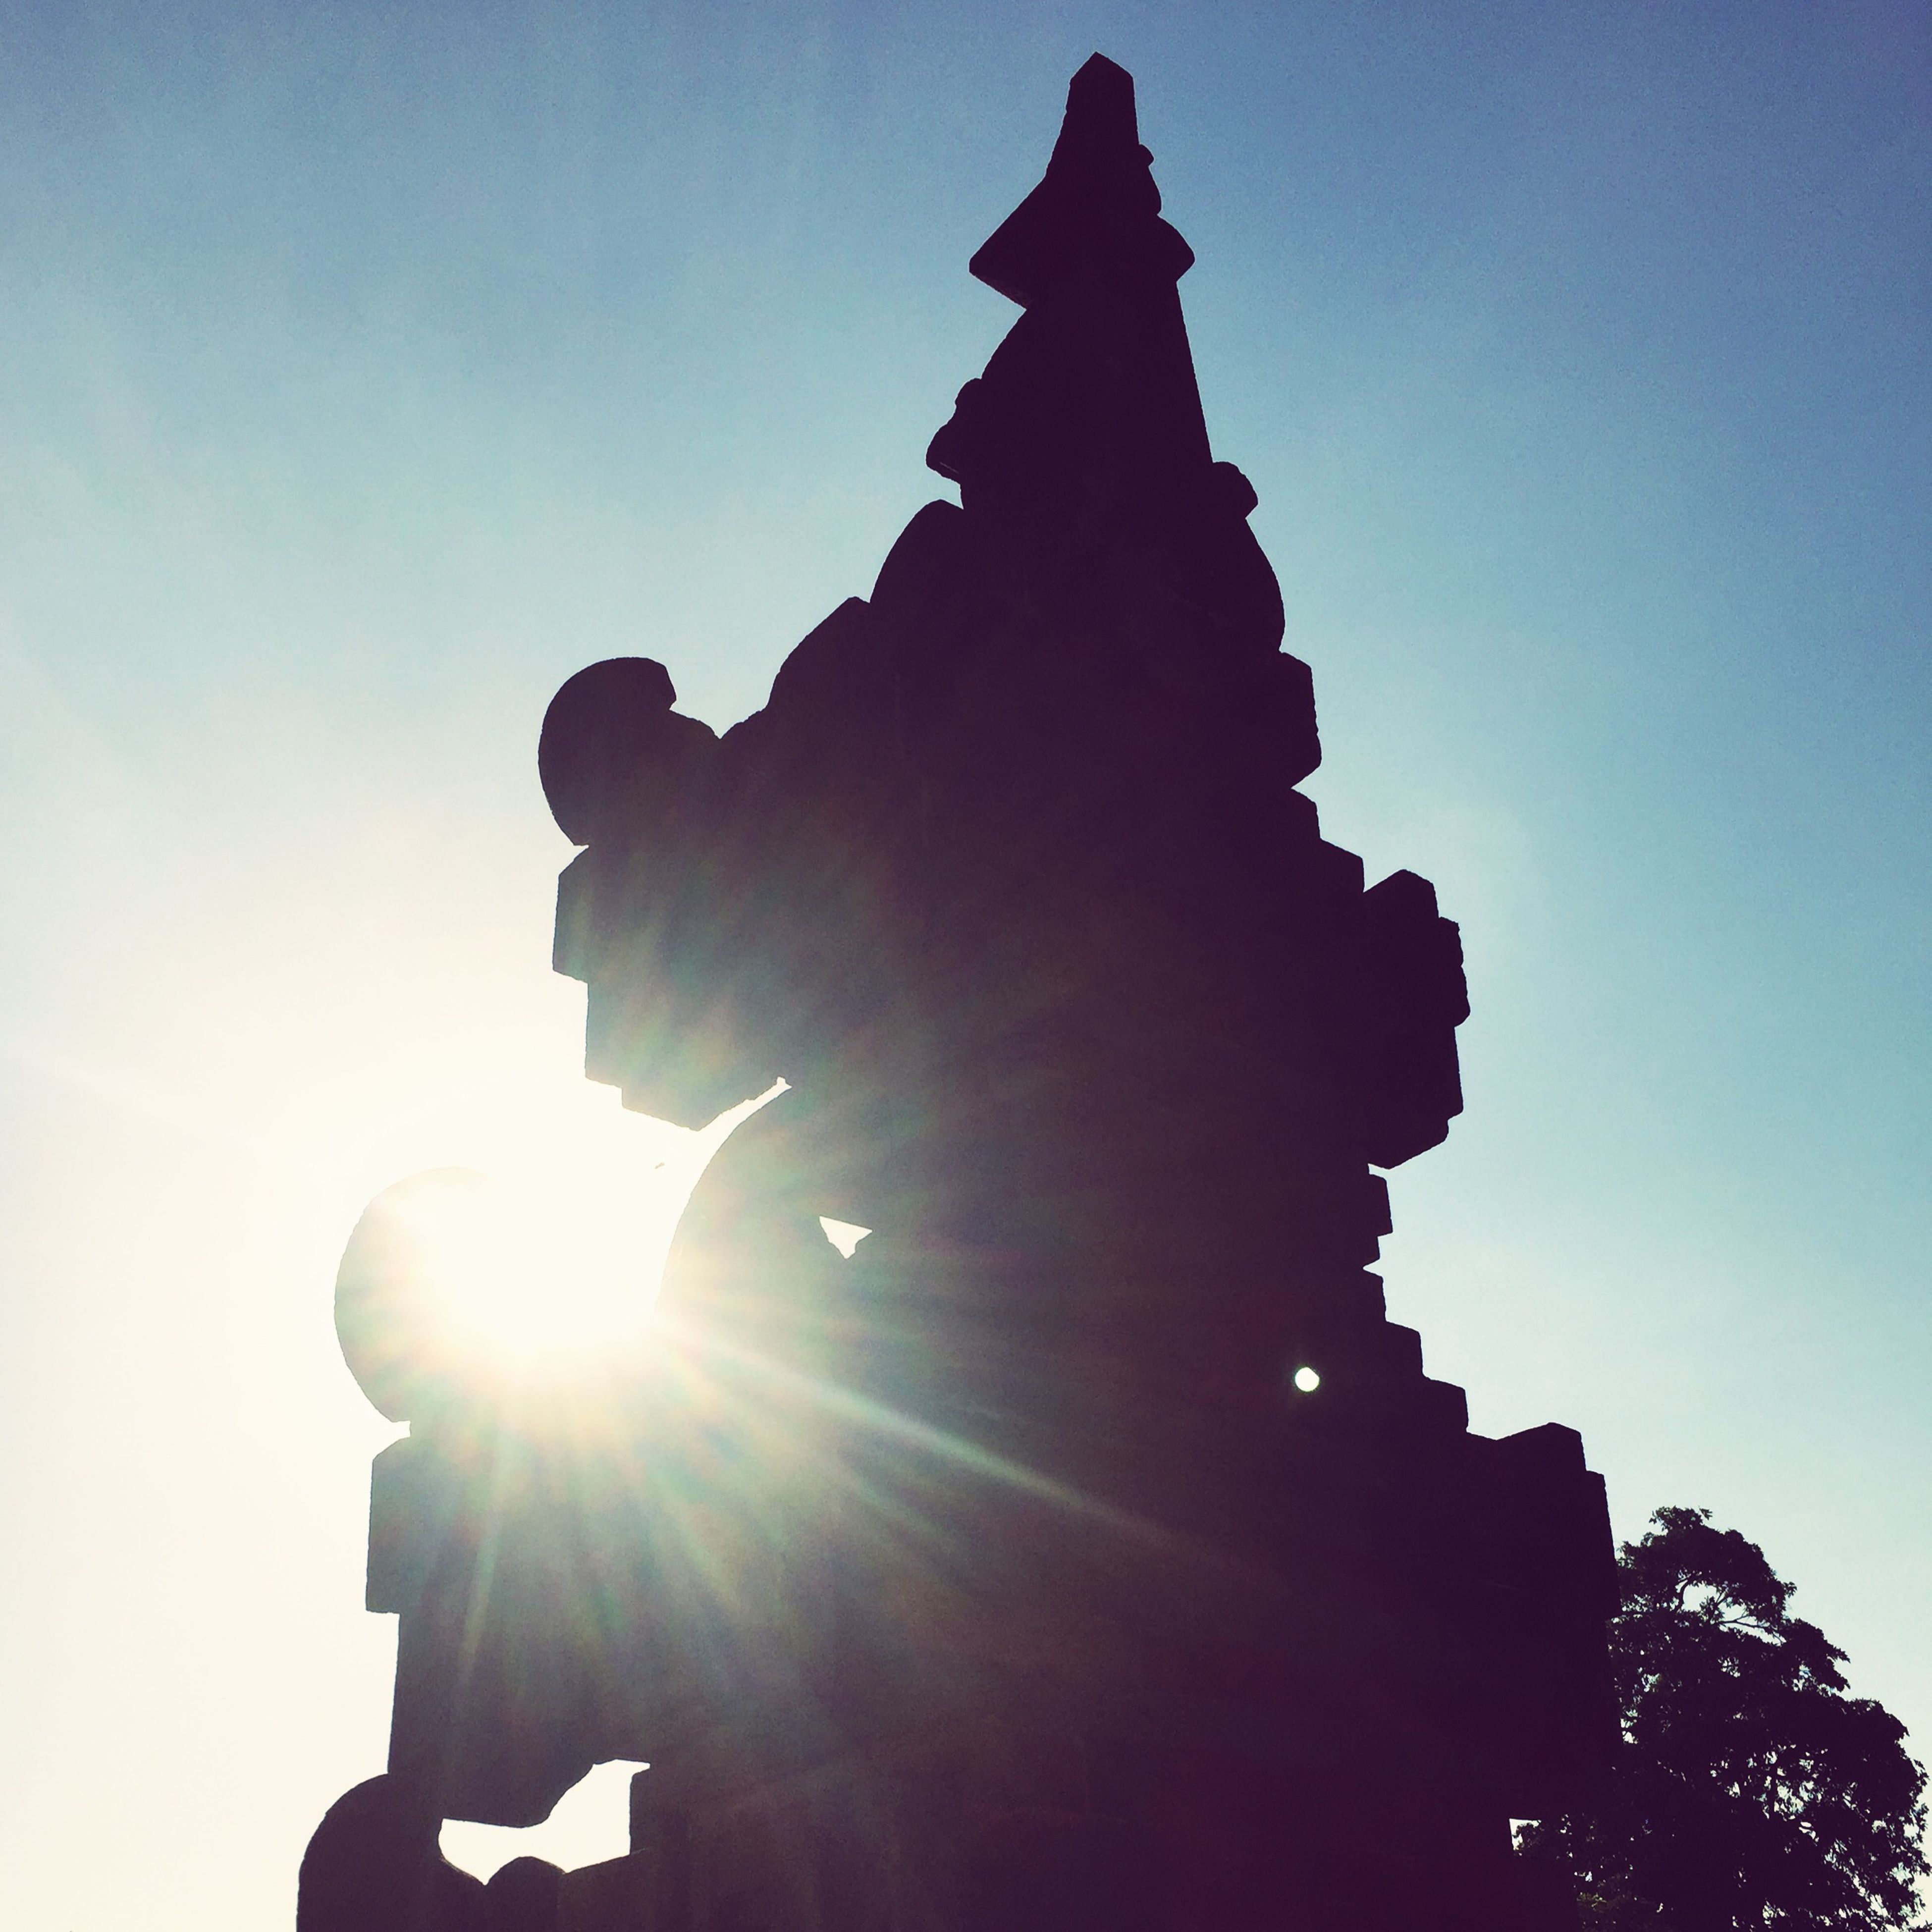 low angle view, sun, sunbeam, clear sky, silhouette, sunlight, lens flare, built structure, architecture, sky, building exterior, religion, spirituality, history, statue, place of worship, sculpture, blue, sunny, outdoors